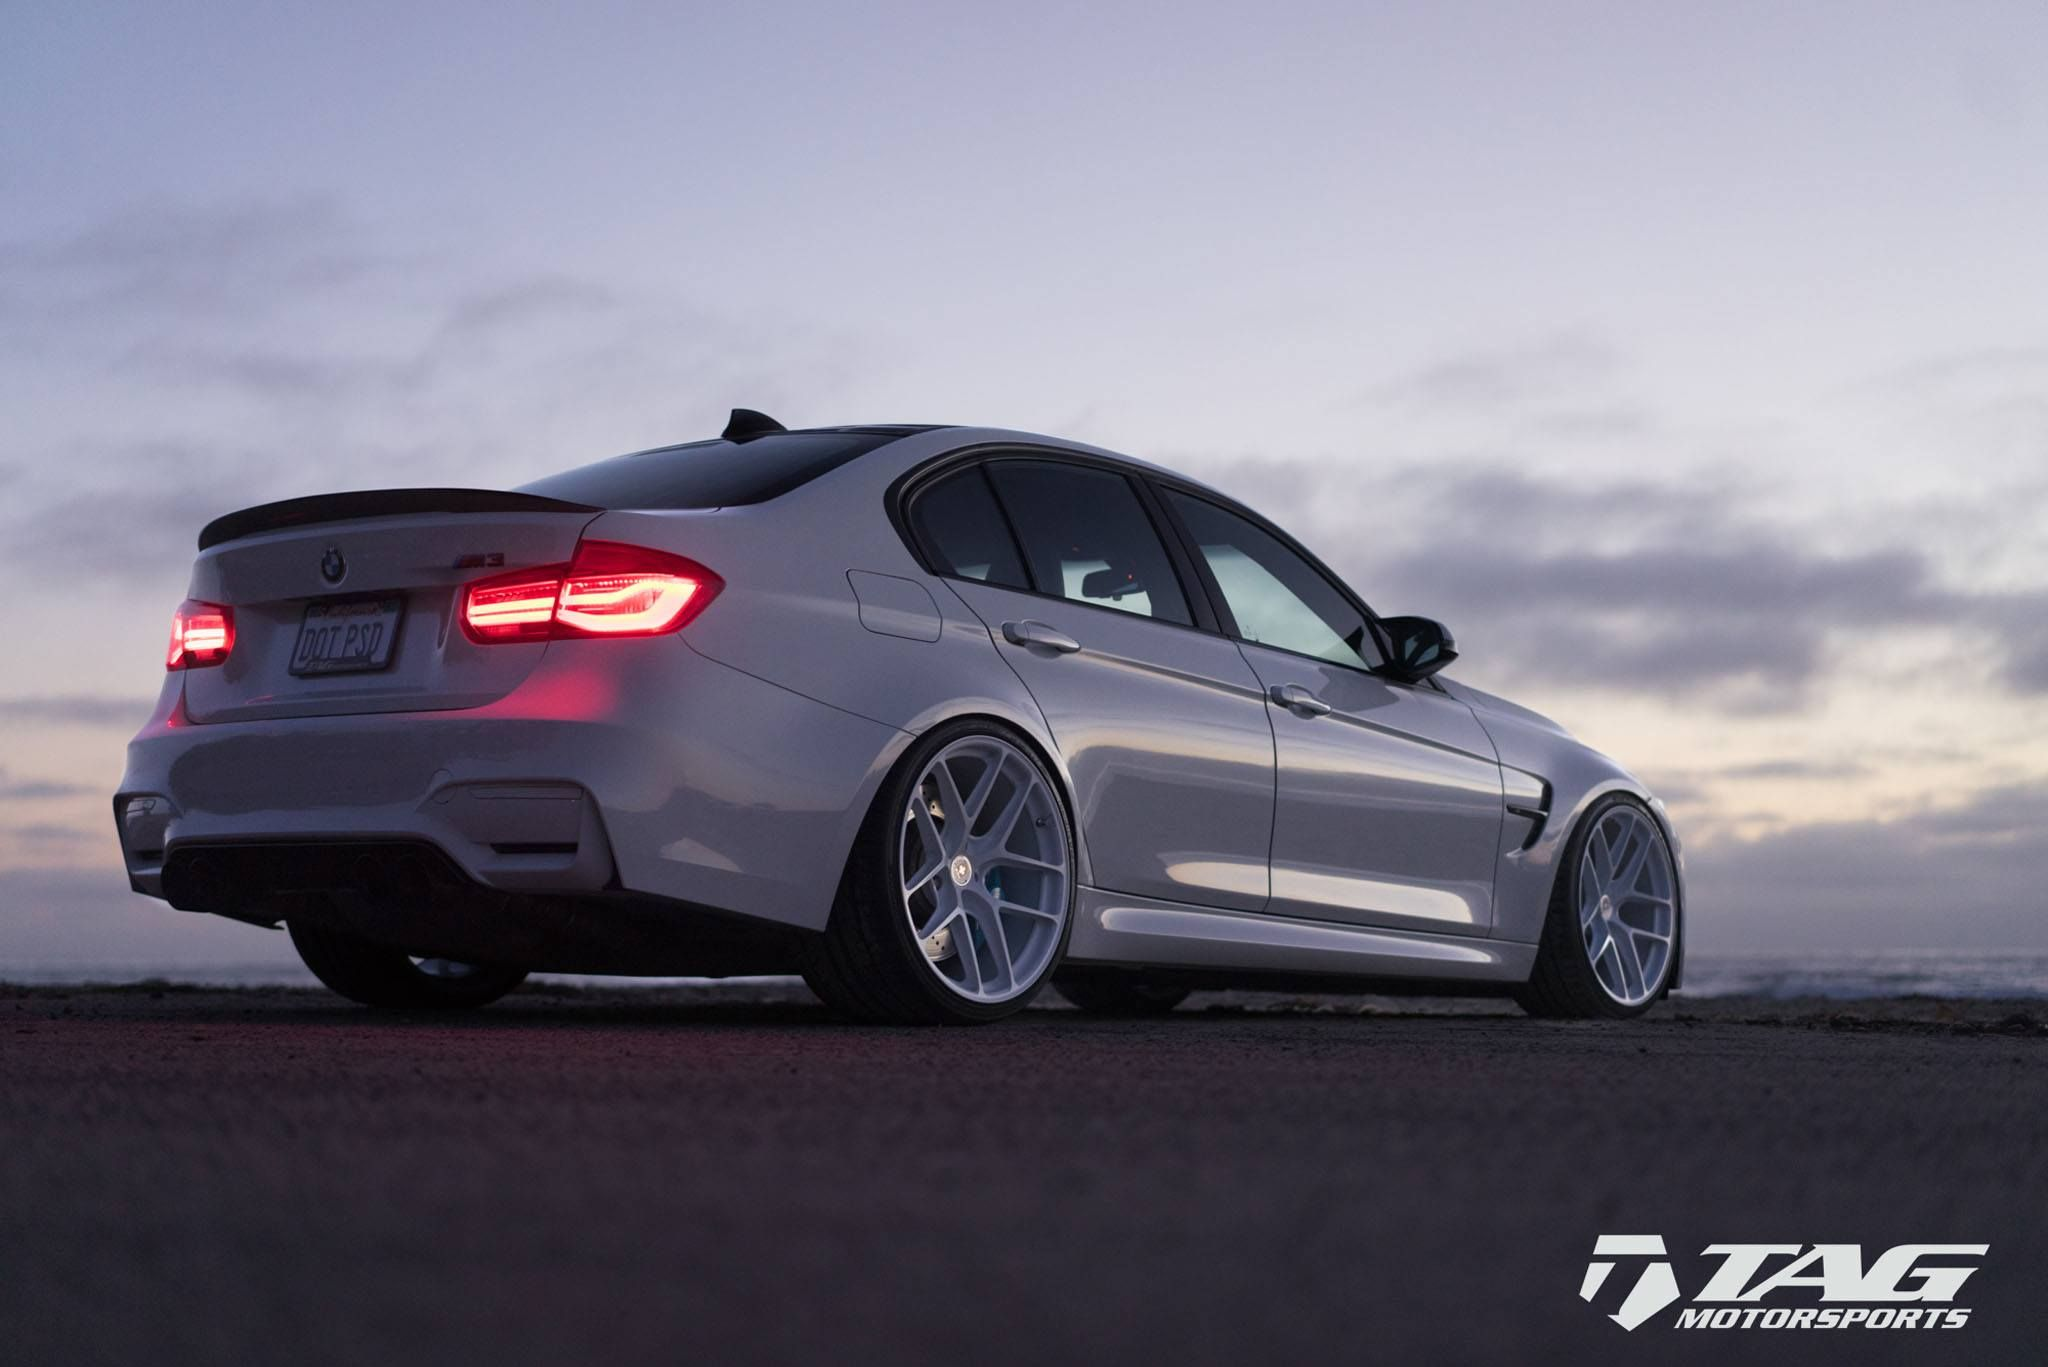 Hre Performance Wheels Bmw M3 With Hre R101 Lightweight In Gloss